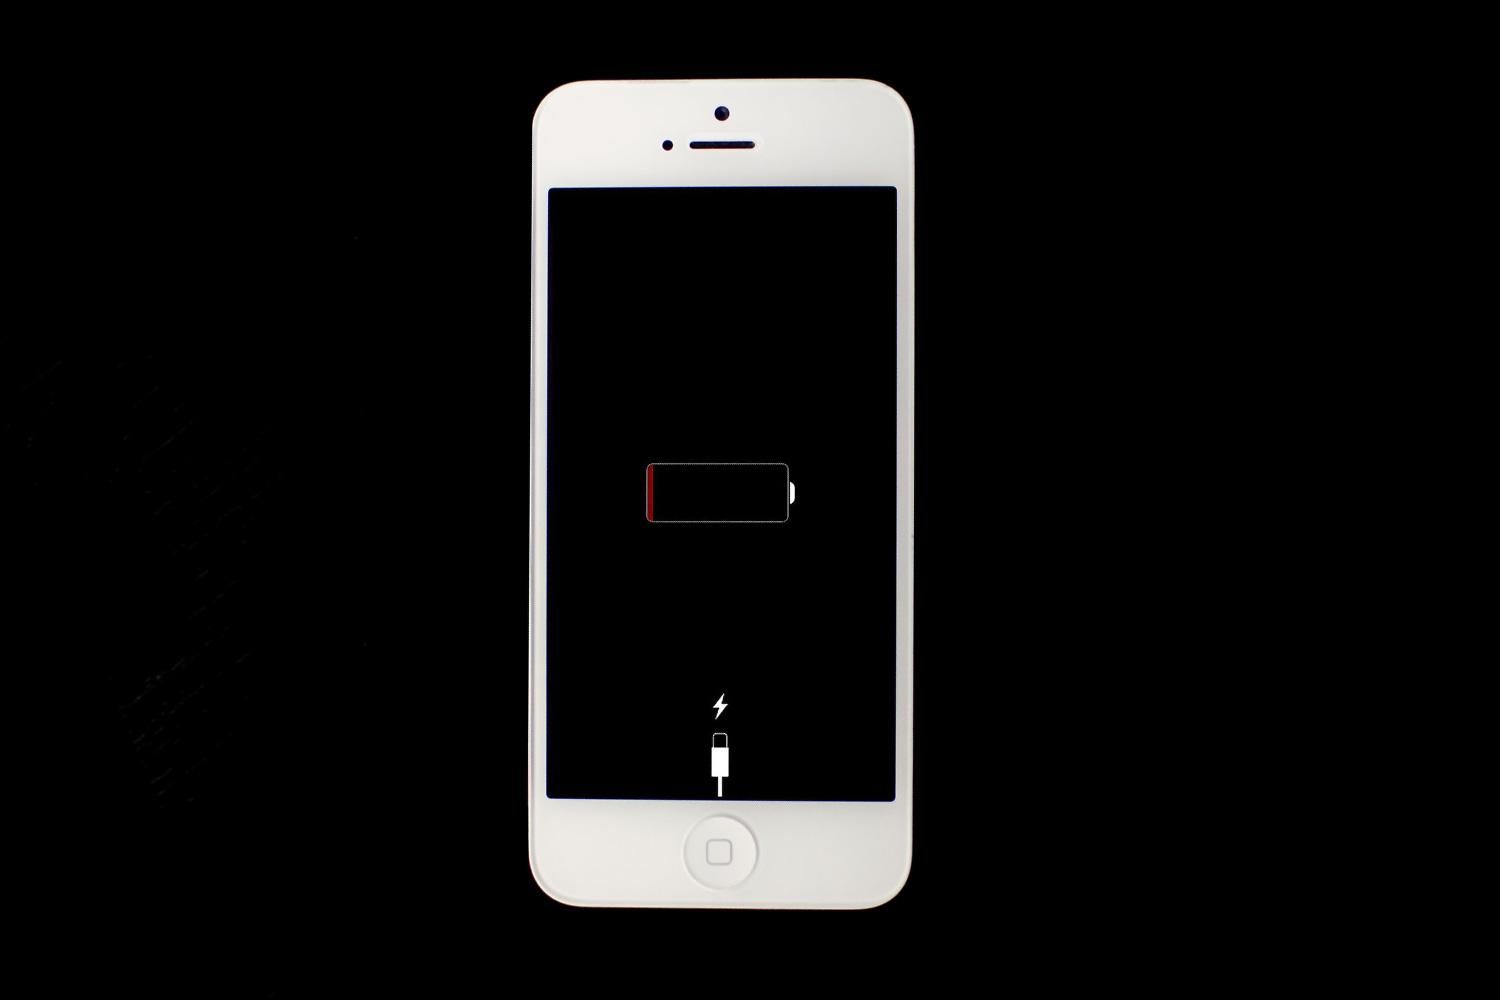 The iPhone 6 needs a bigger battery more than anything ...